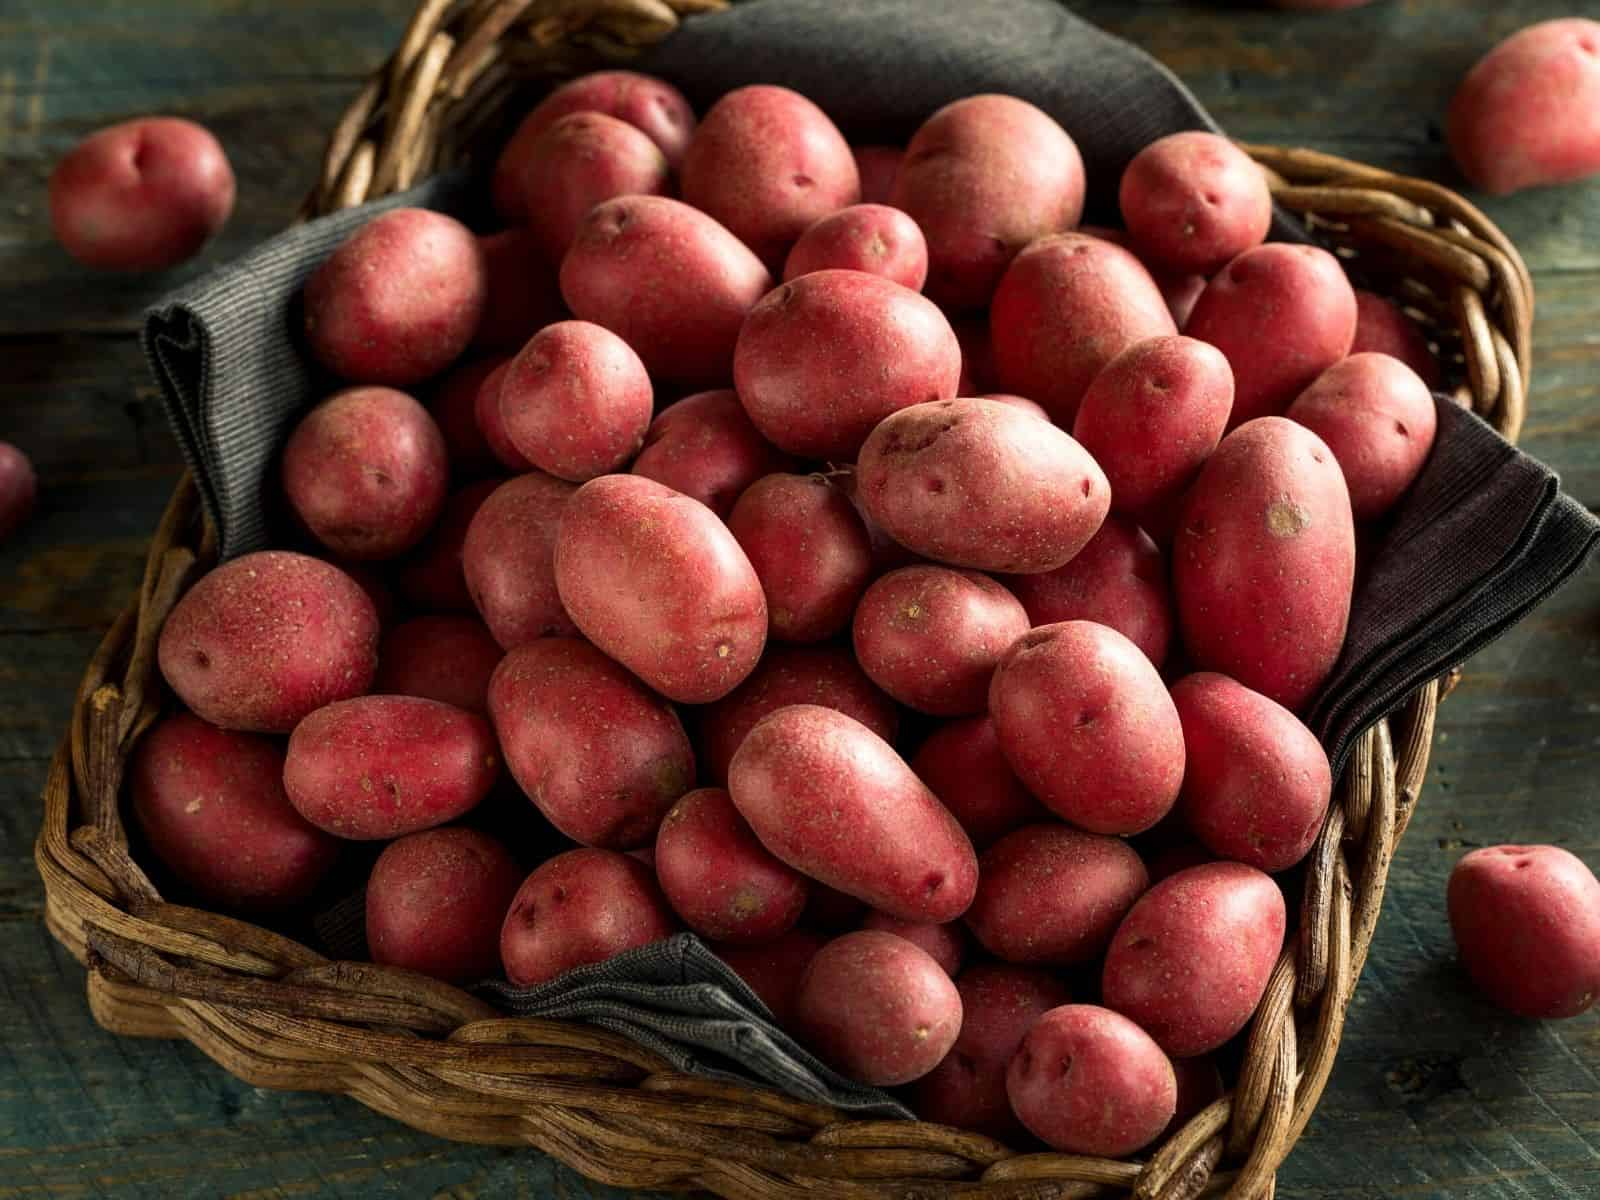 red potatoes in a basket.